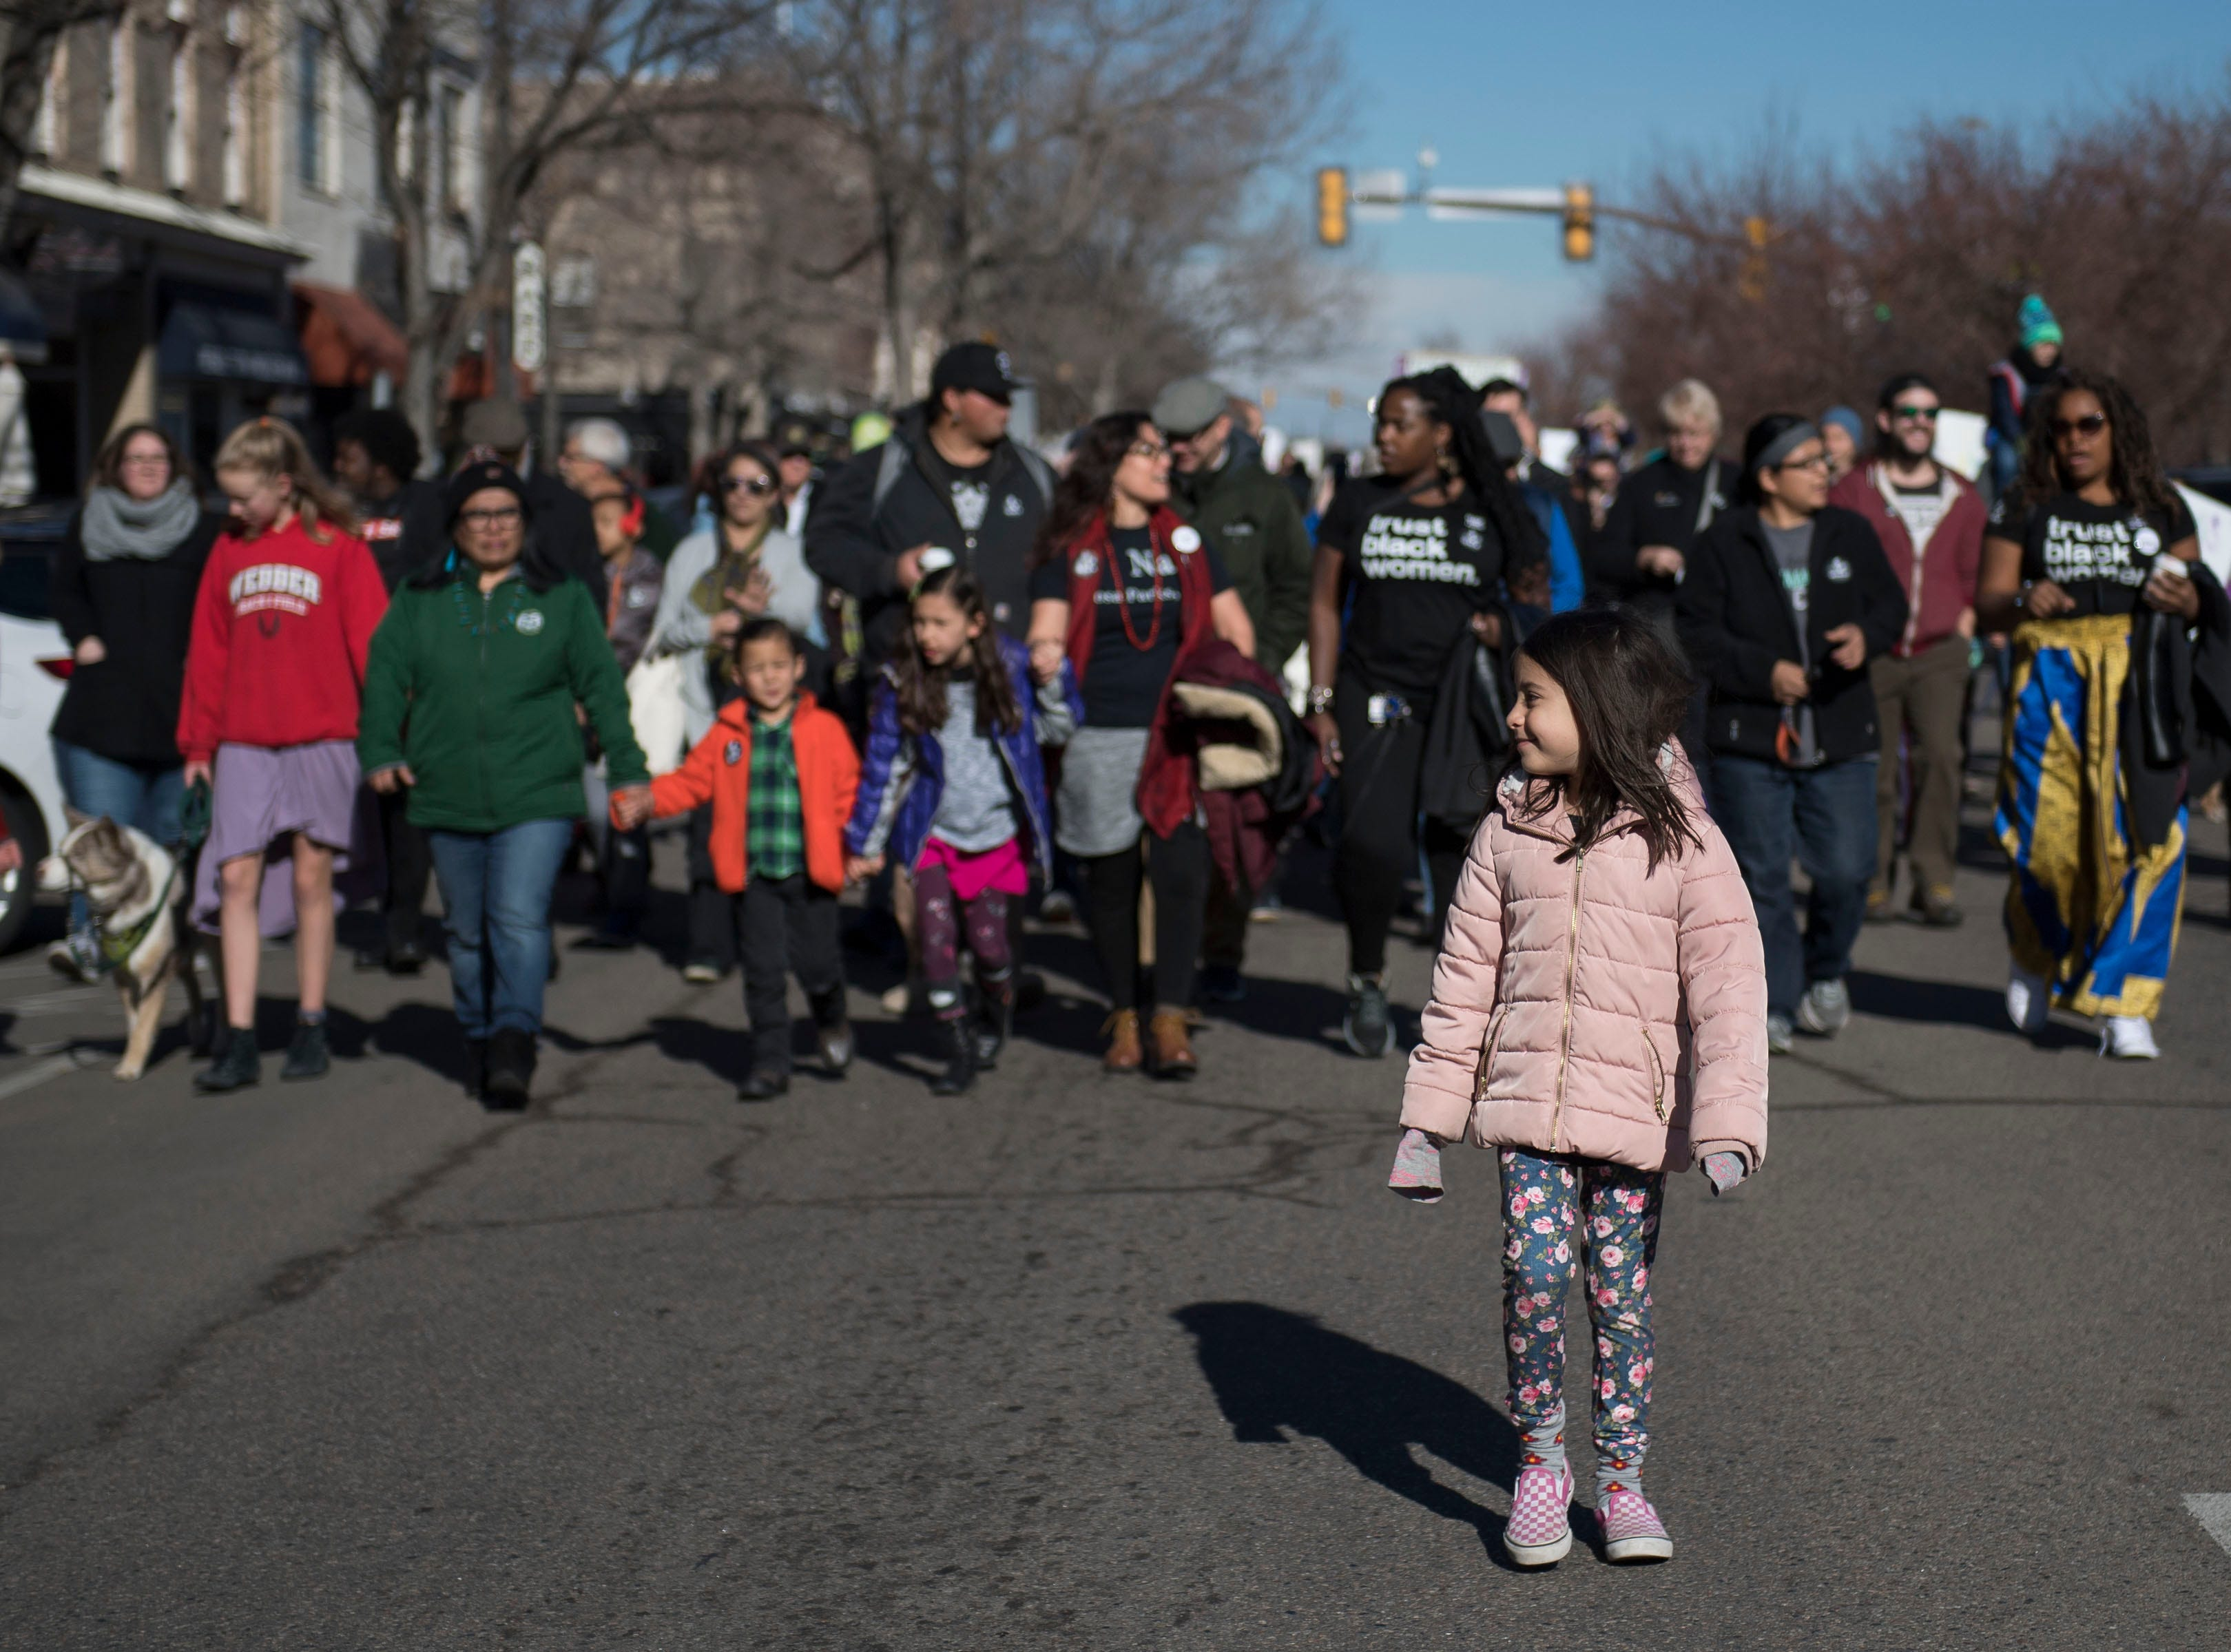 Liliana Bartecchi, 6 , walks at the front of the crowd while march participants head down South College Avenue during the Dr. Martin Luther King, Jr. March & Celebration on Monday, Jan. 21, 2019, in Fort Collins, Colo.